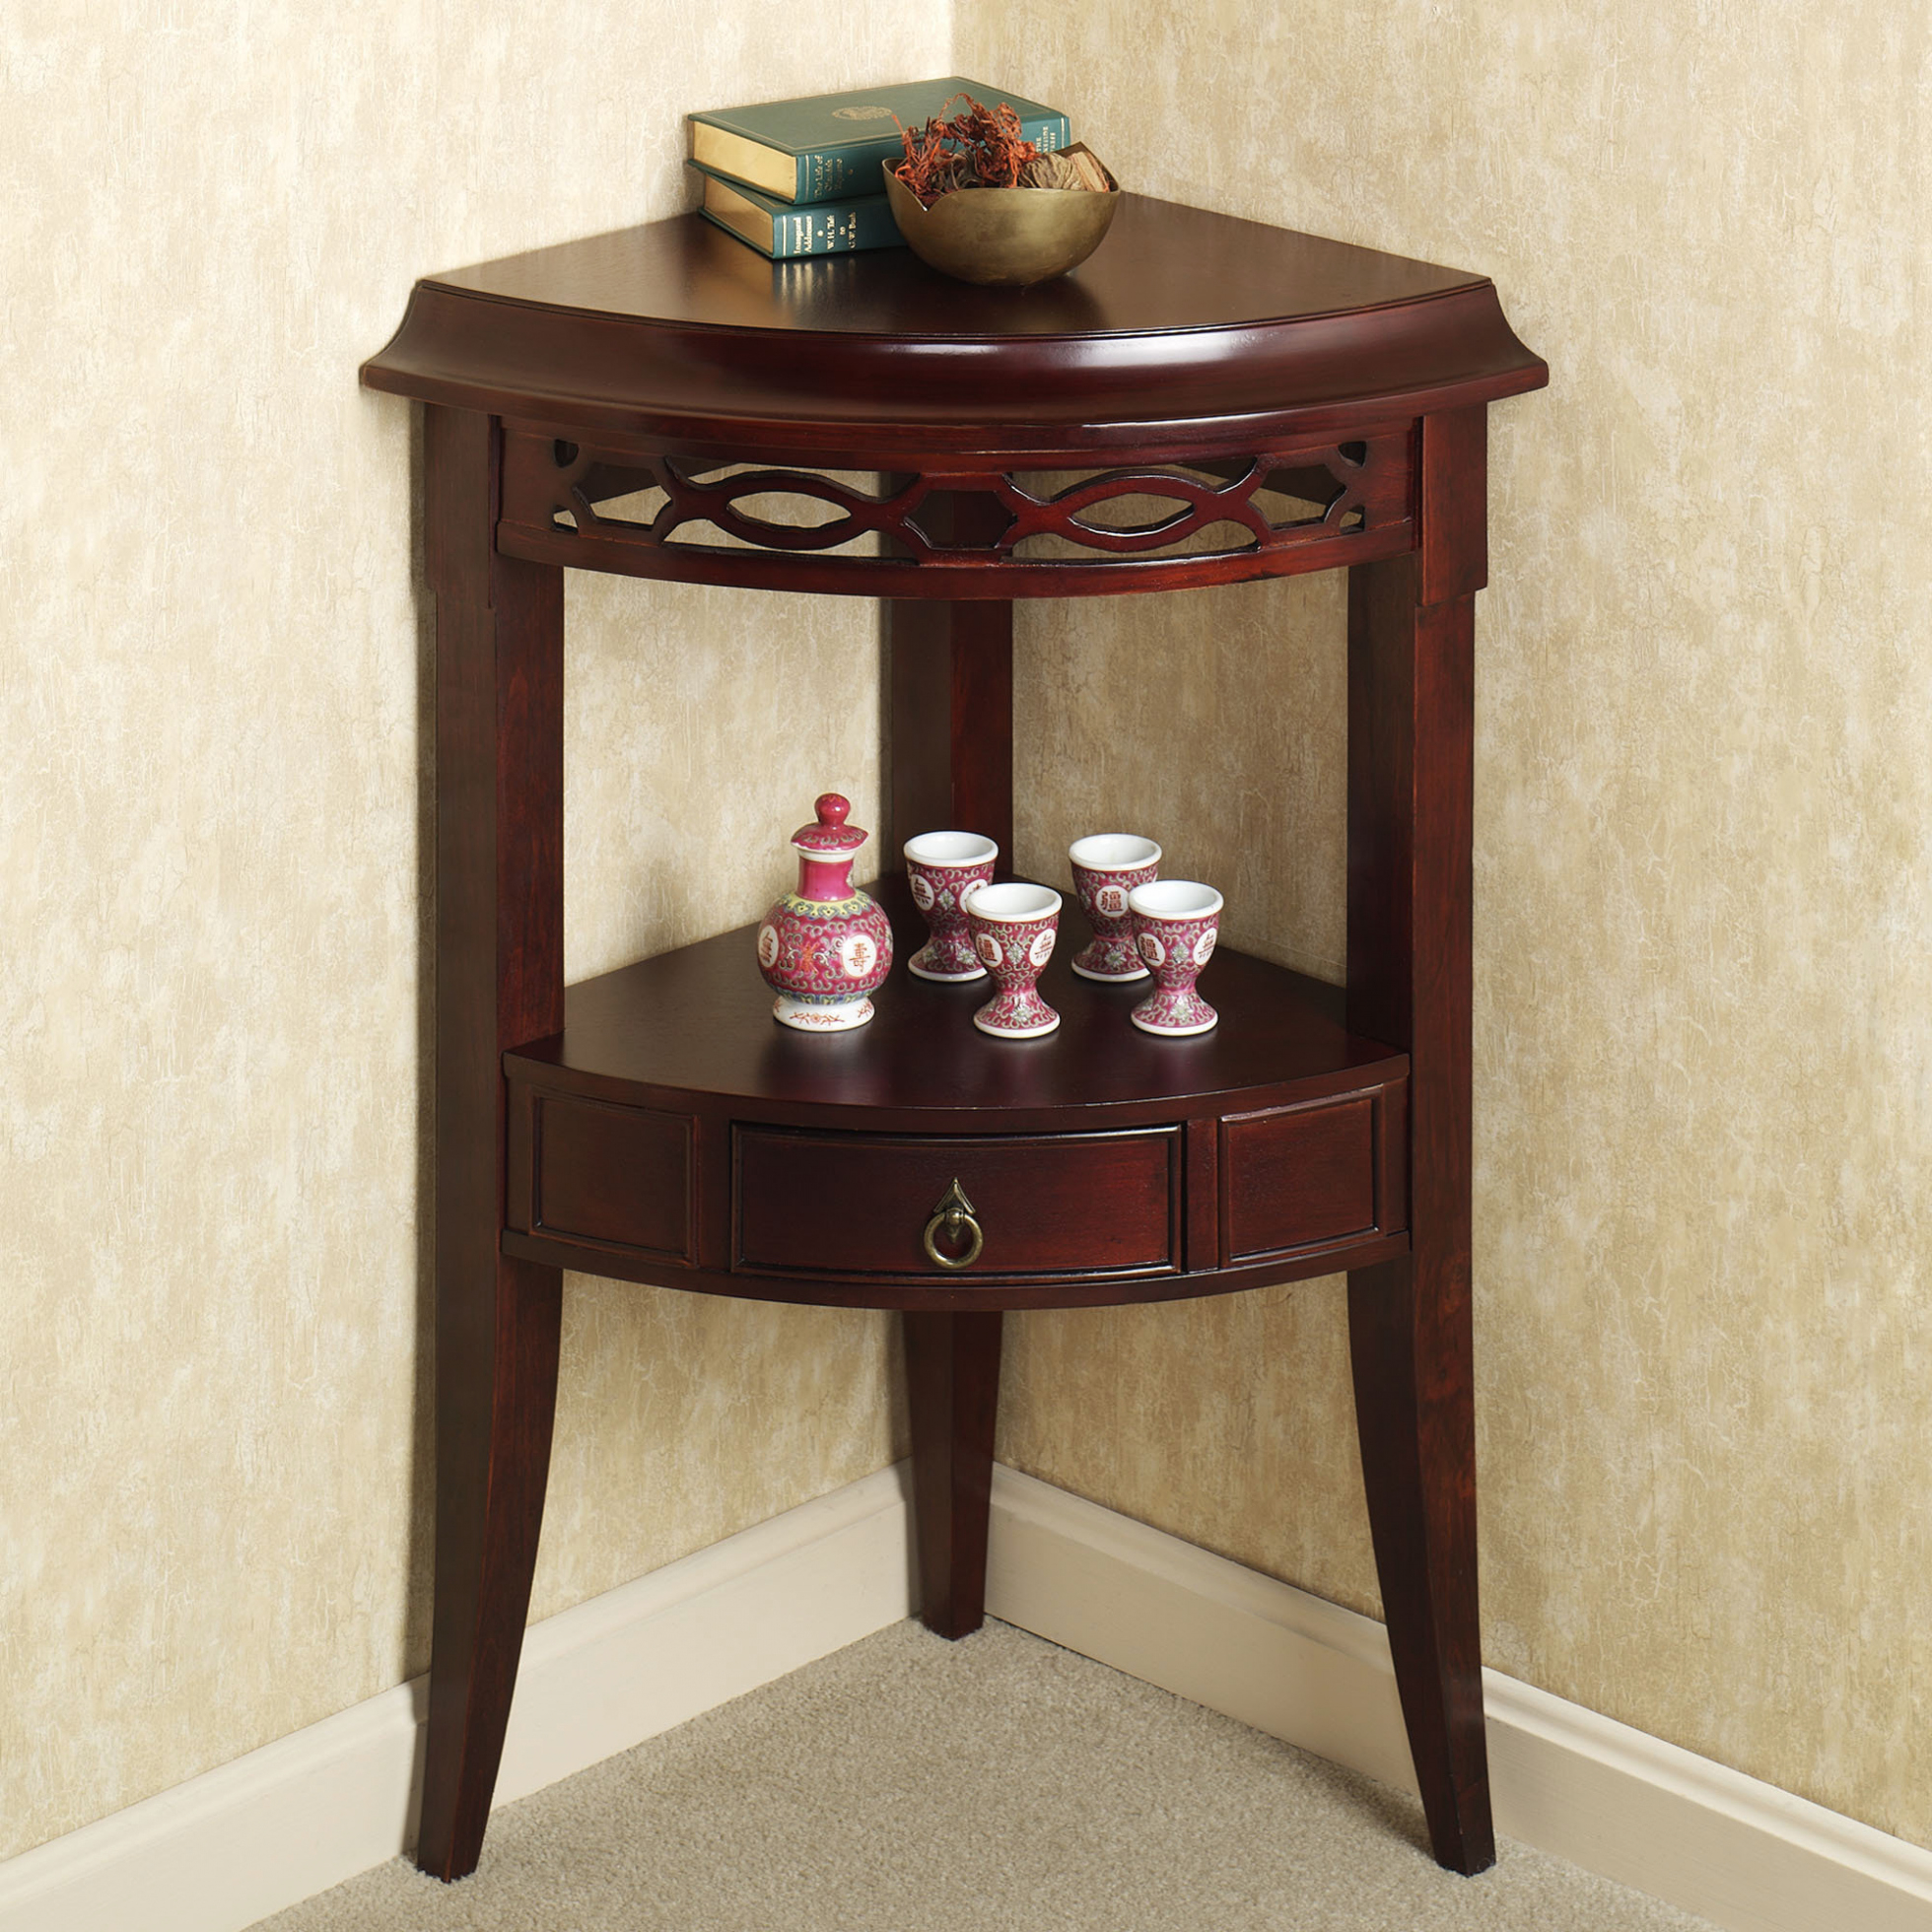 furniture accent storage small corner table classy hallway with inspiring applied your residence concept round large white tablecloths nesting coffee ikea width console bar brown